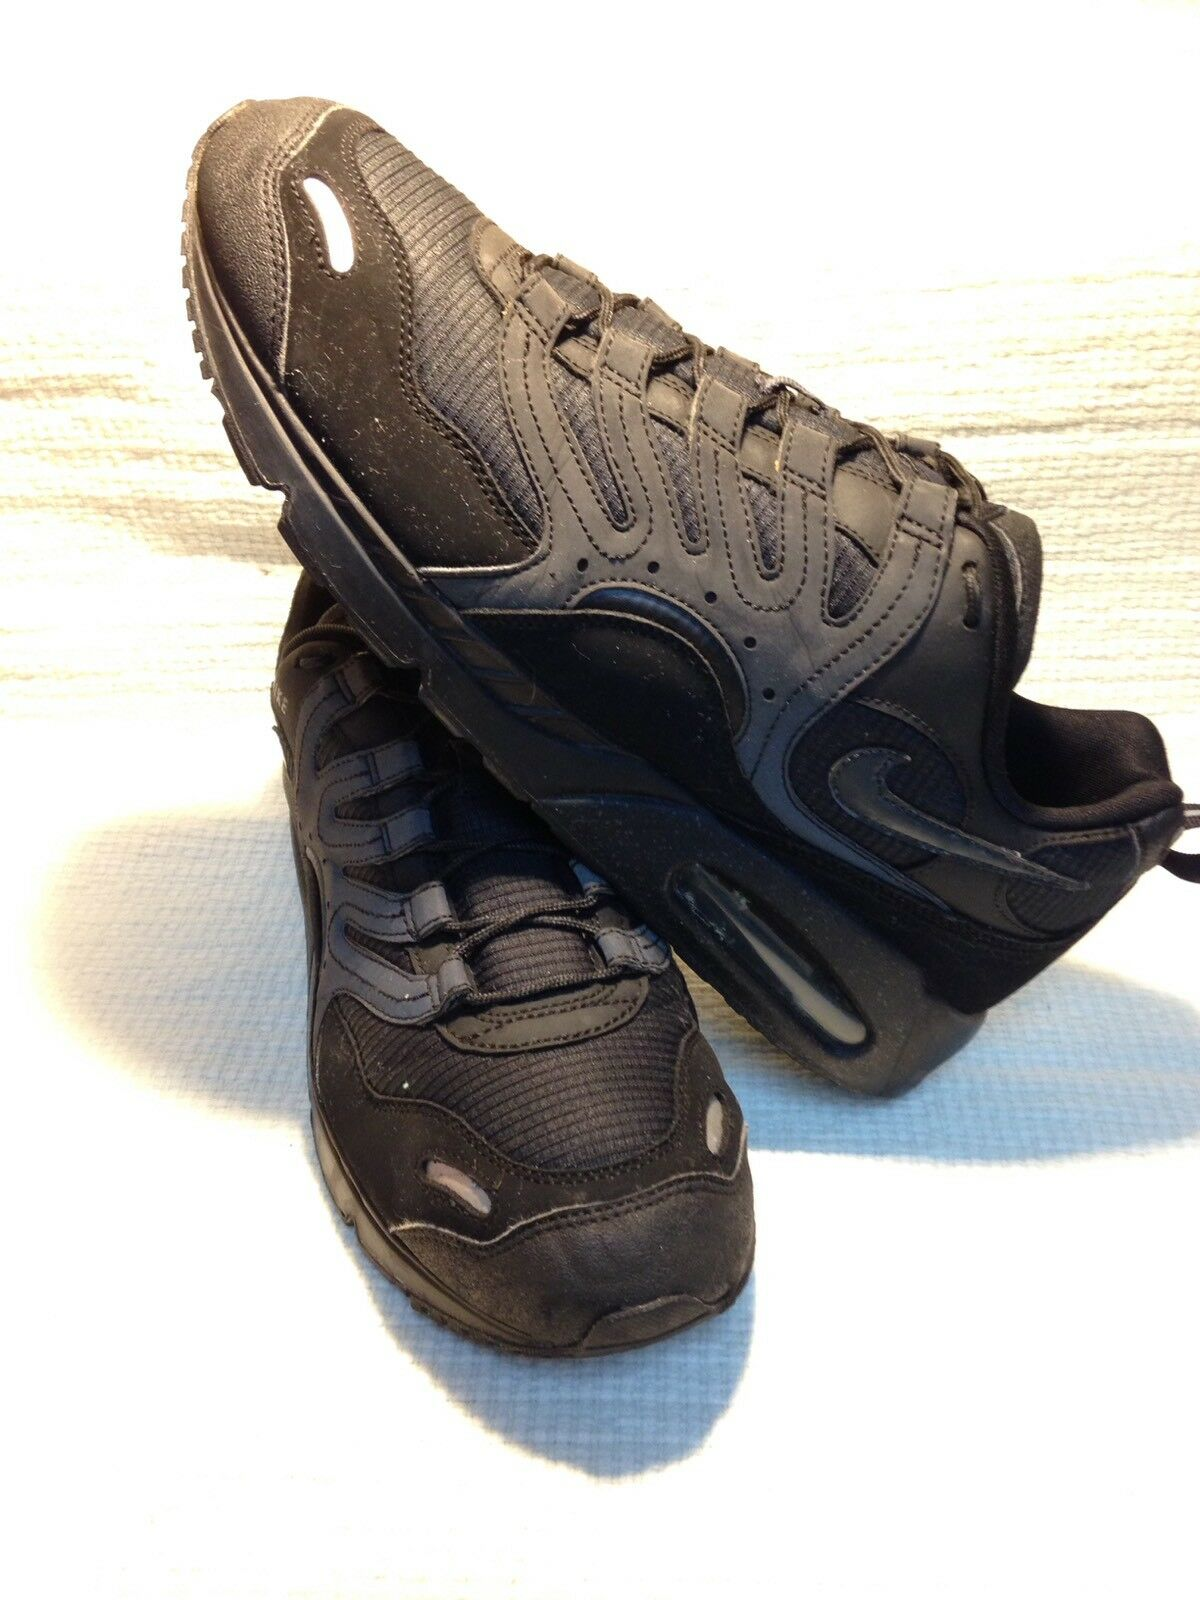 Special limited time Men's Nike Air Max Humara Black/Reflective Rare Athletic Shoe SIZE 13